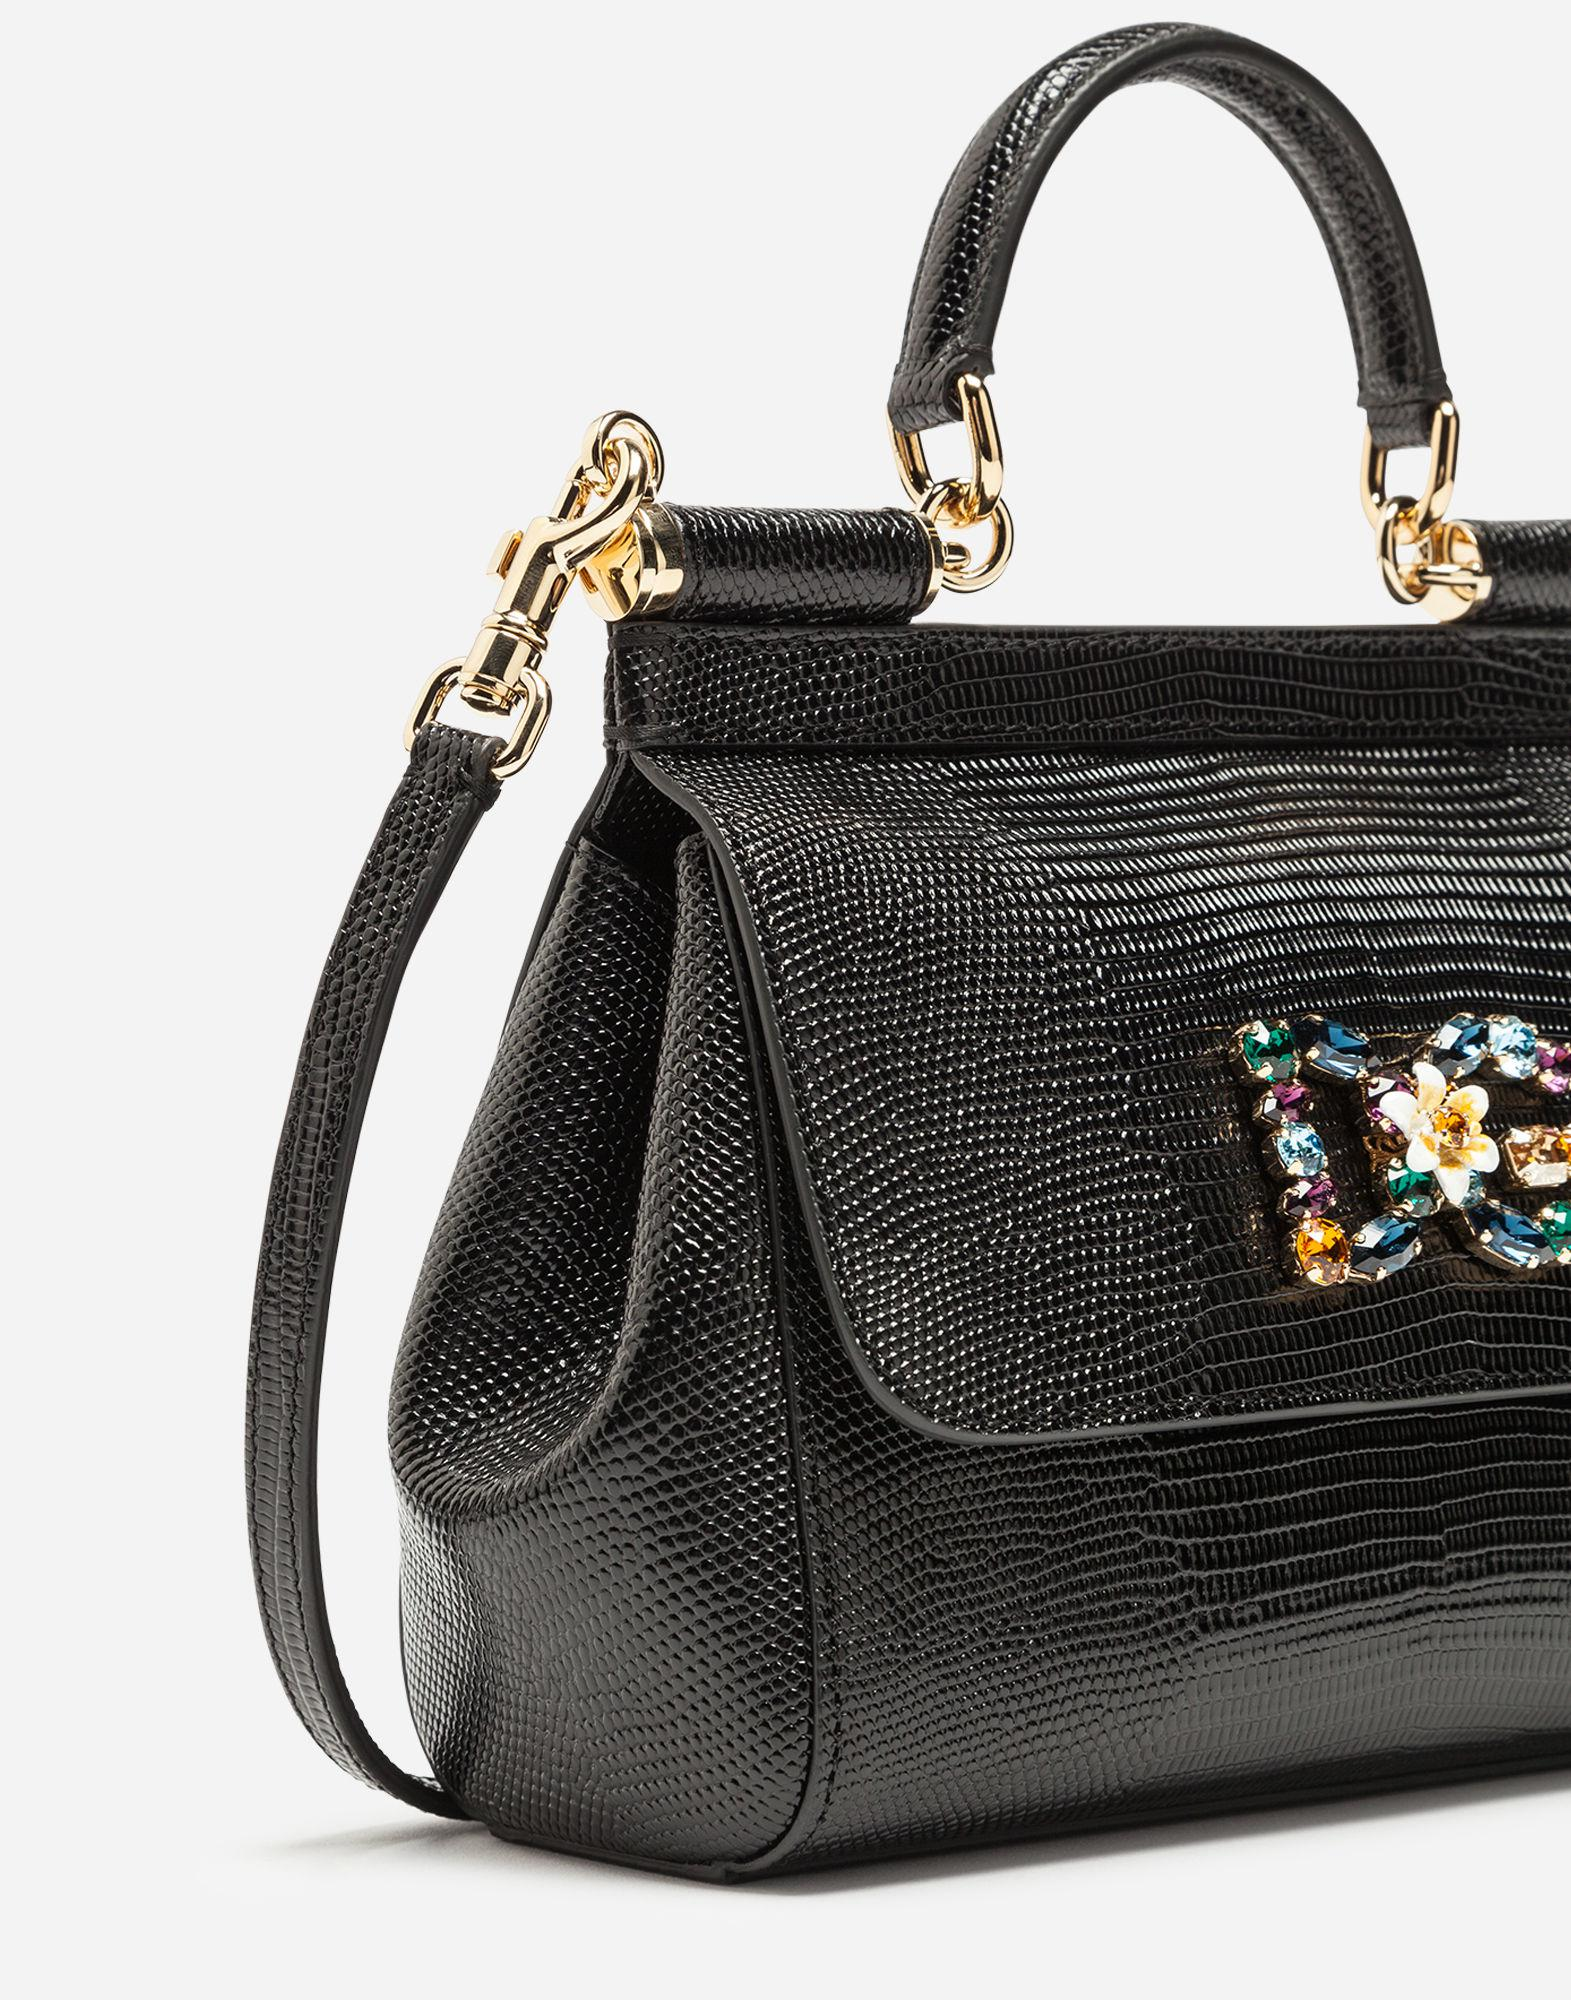 Lyst - Dolce   Gabbana Small Calfskin Sicily Bag With Iguana-print And Dg  Crystal Logo Patch in Black 9285420a2ad1e